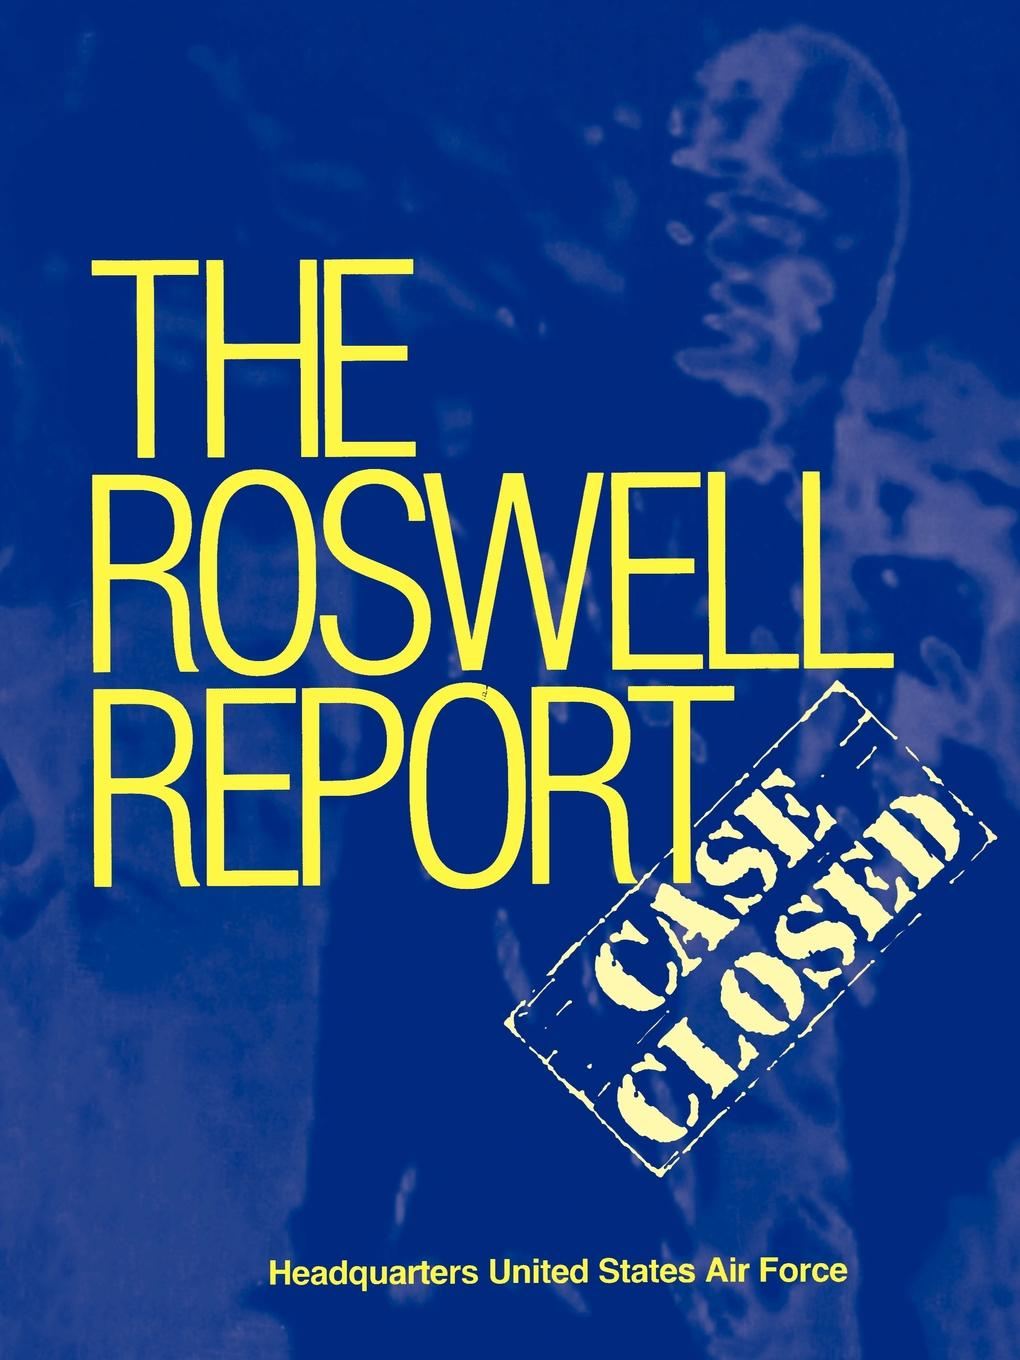 James McAndrew, U.S. Air Force Roswell Report. Case Closed (The Official United States Air Force Report) цены онлайн